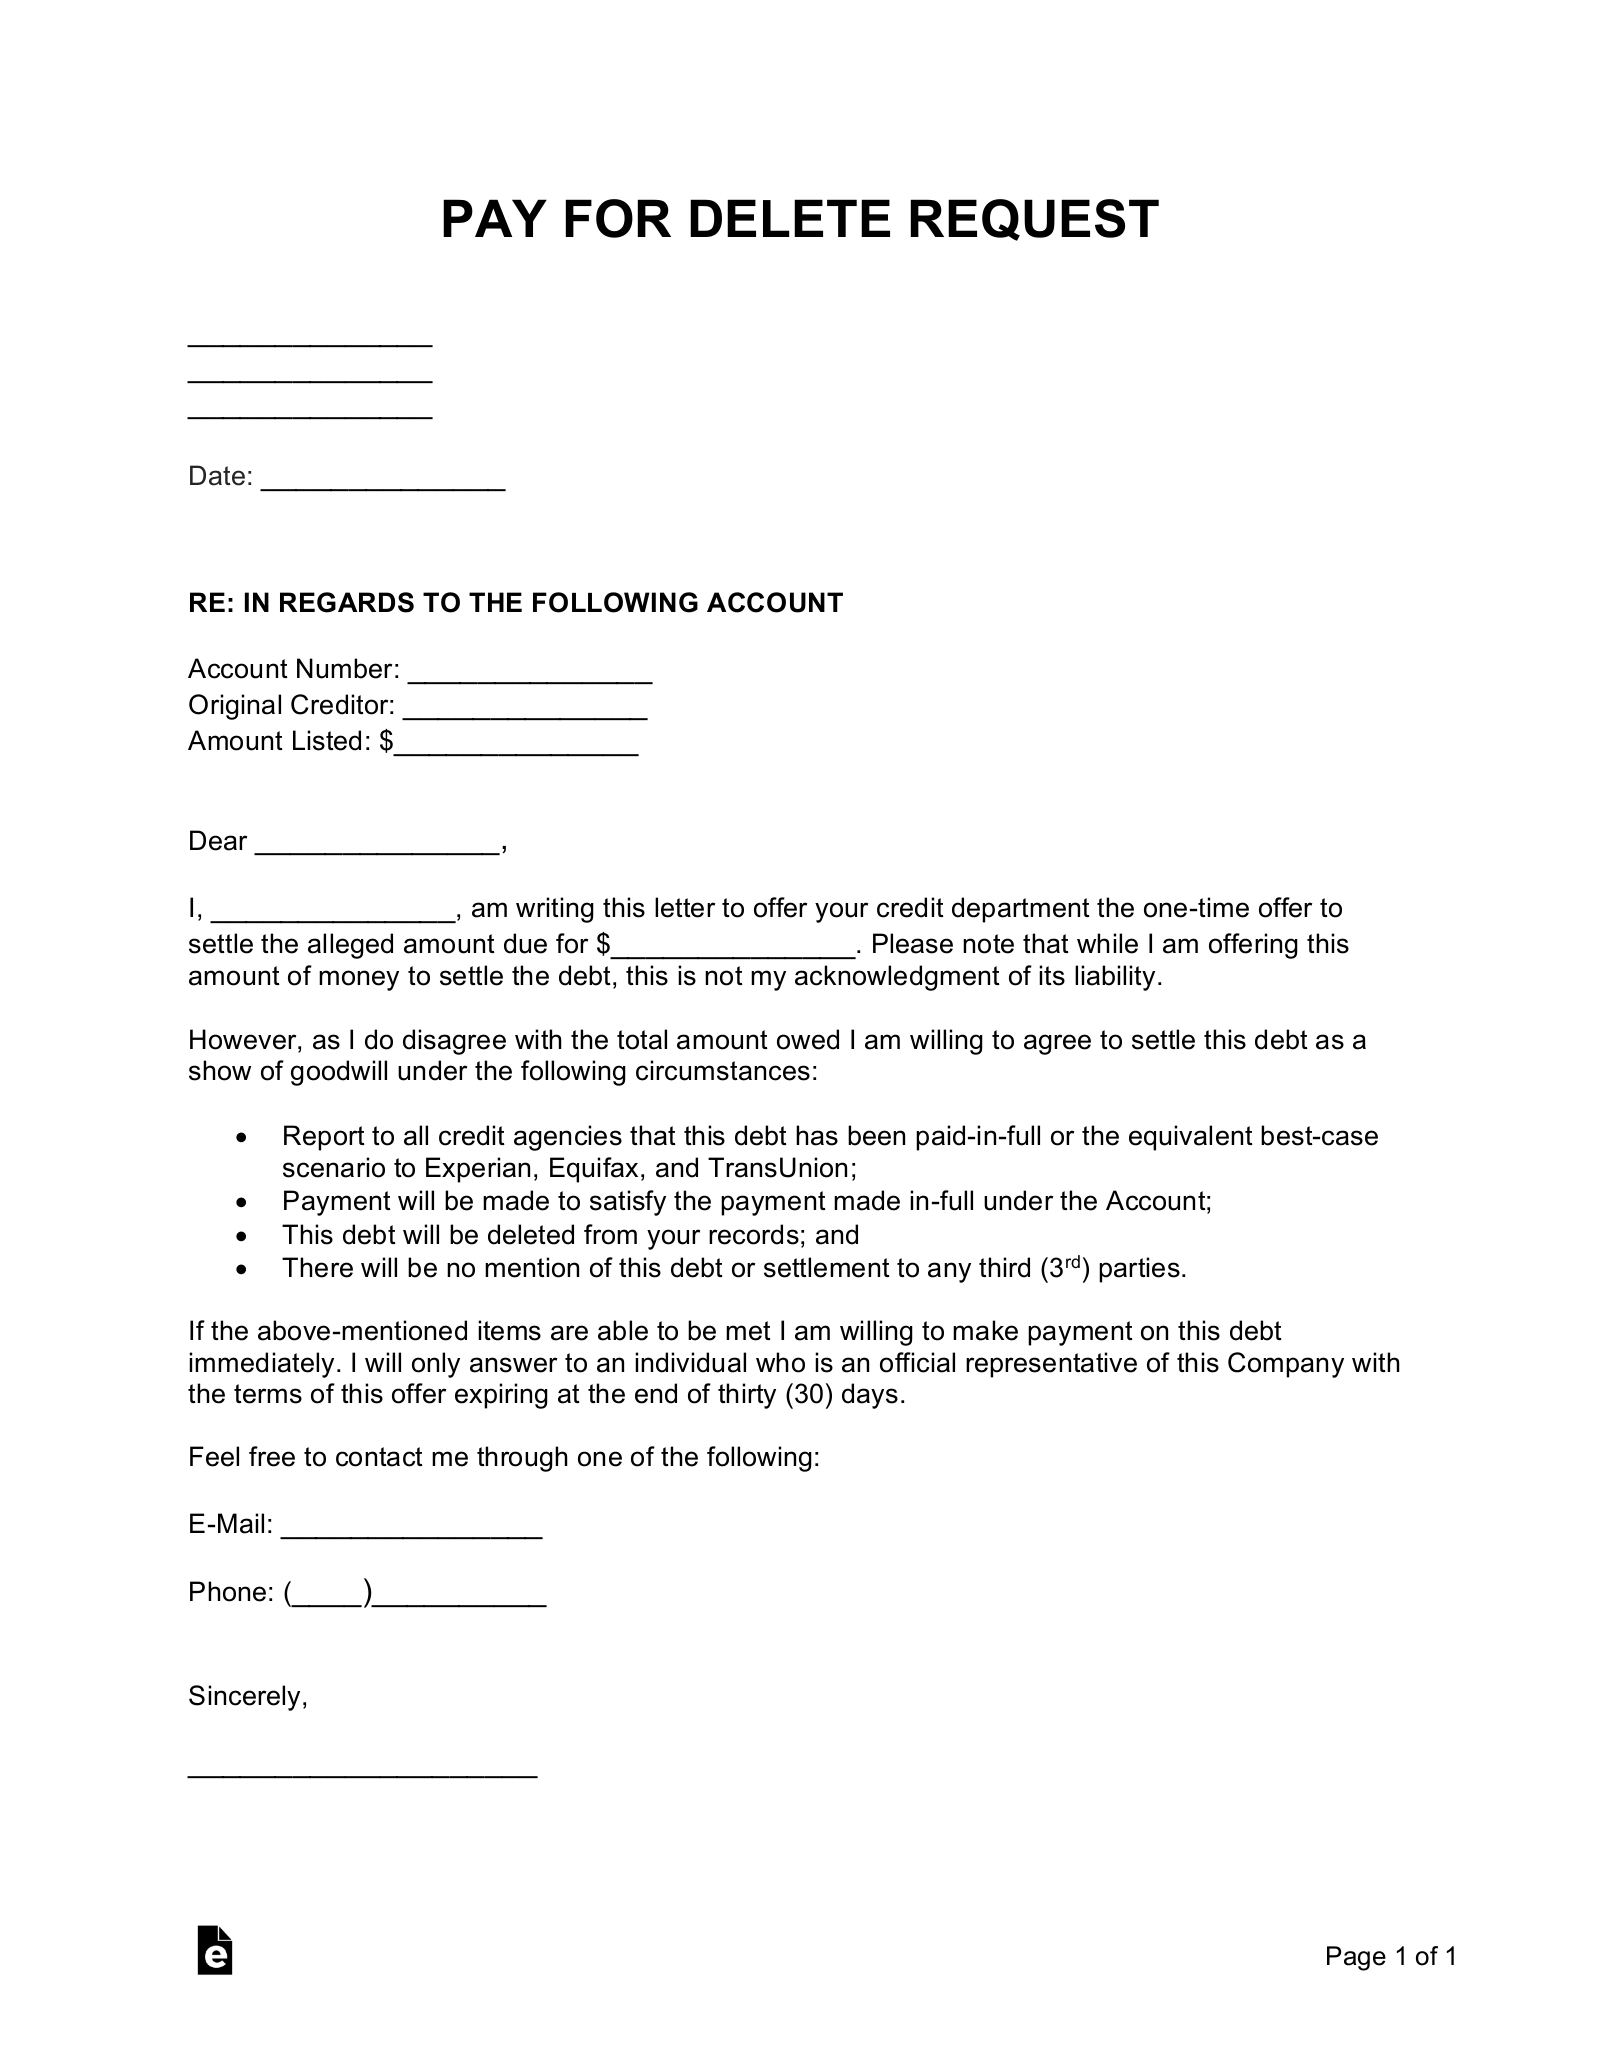 Goodwill Forgiveness Letter Template from eforms.com